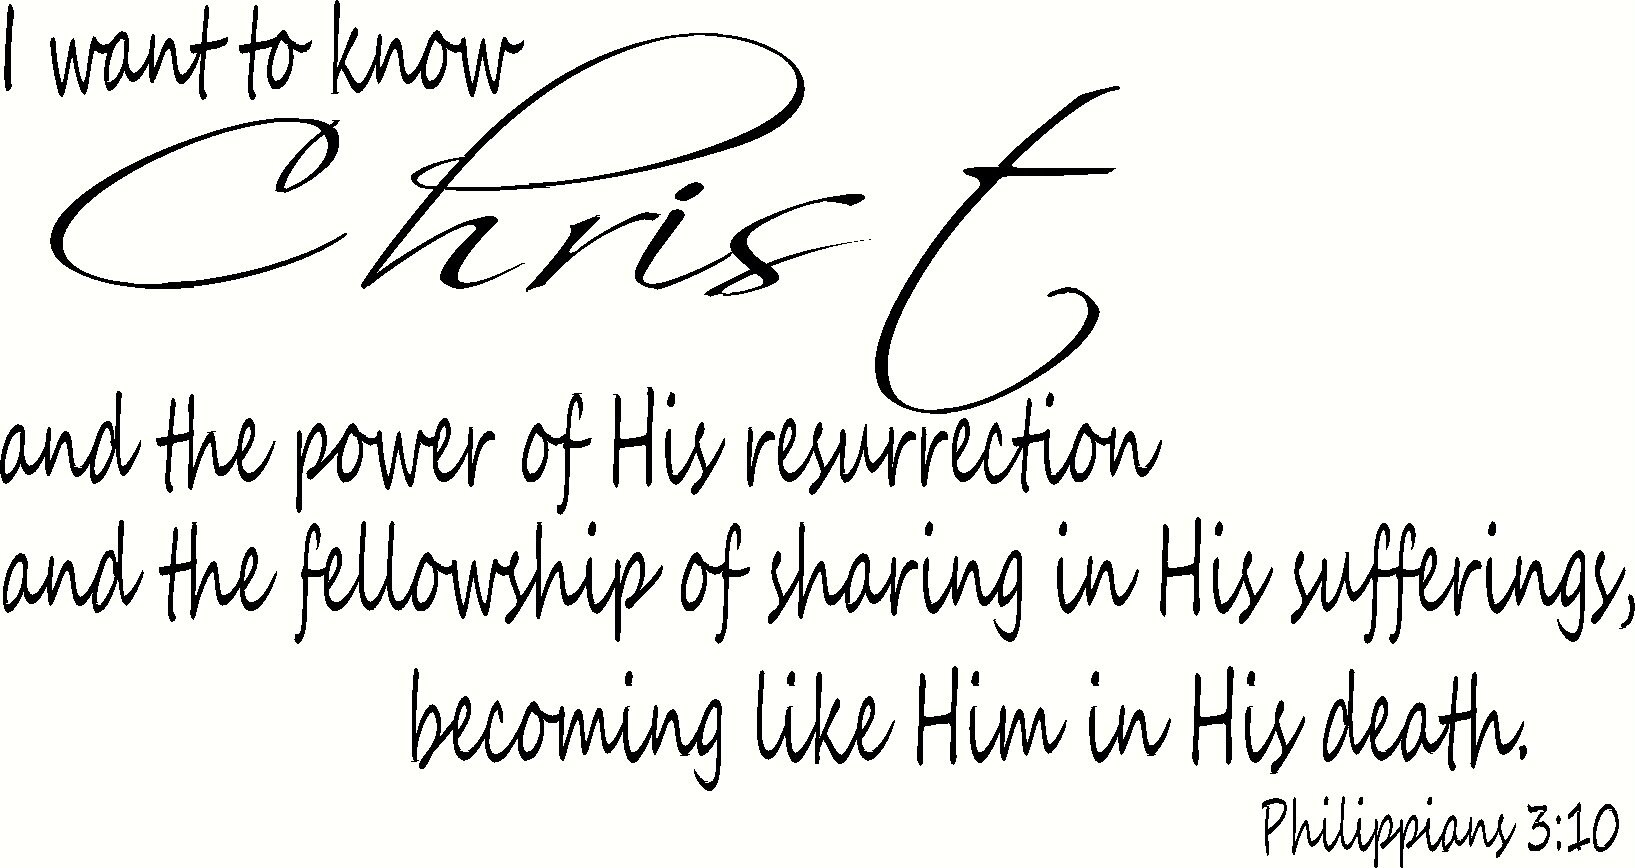 Philippians 3:10 Wall Art, I Want to Know Christ and the Power of His Resurrection and the Fellowship of Sharing in His Sufferings, Becoming Like Him in His Death, Creation Vinyls